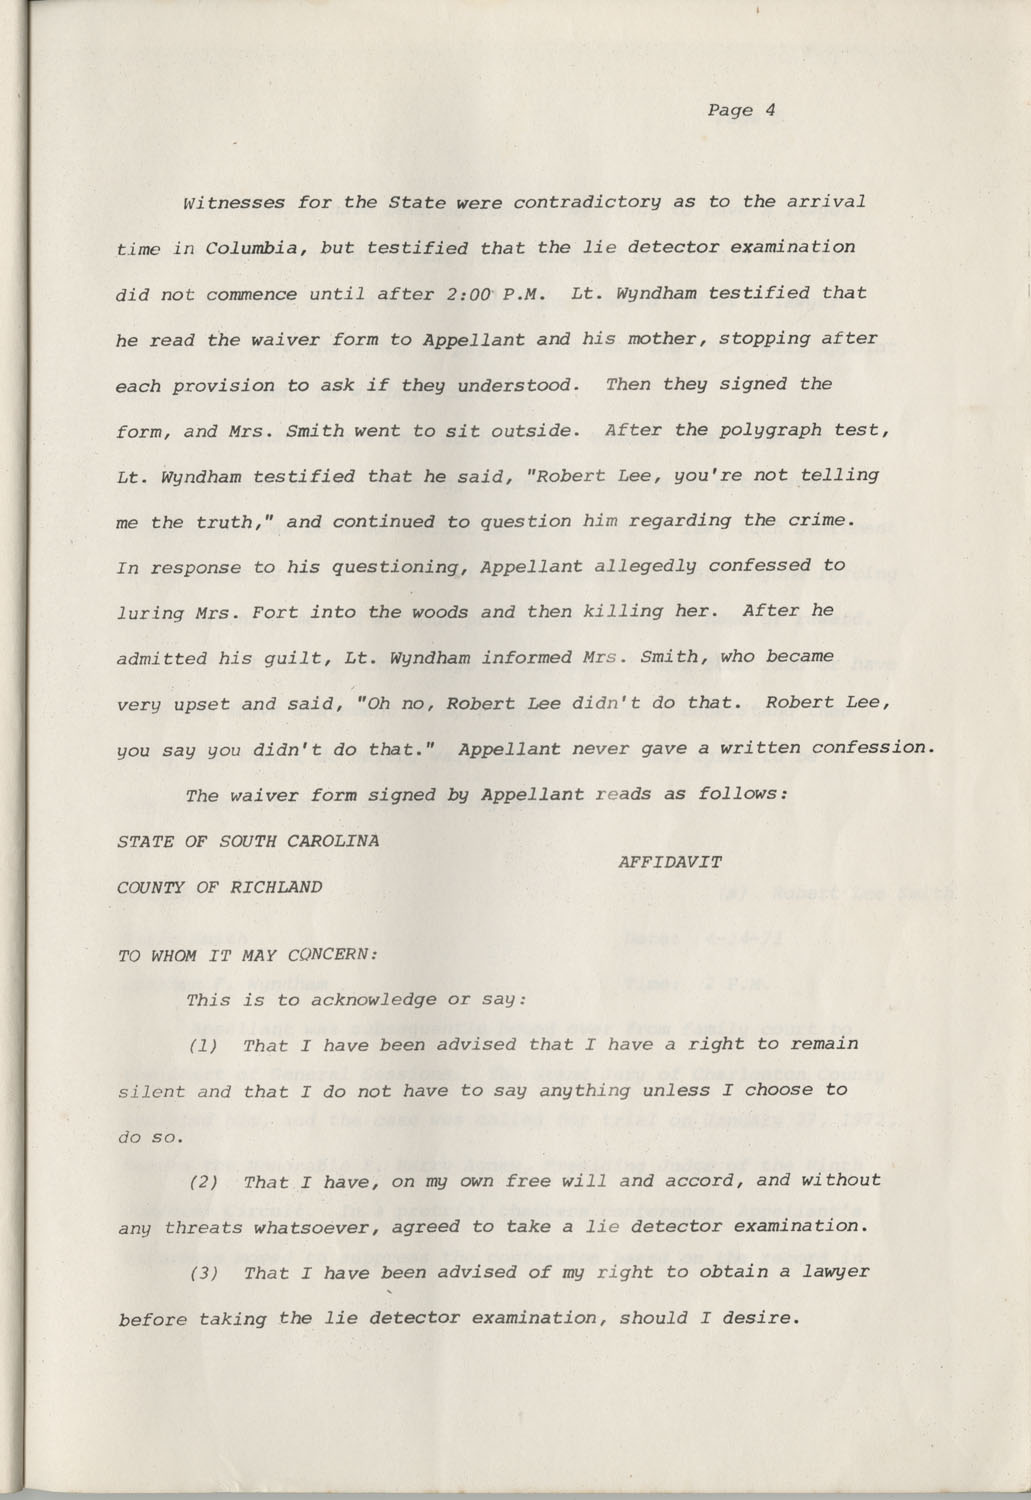 State of South Carolina vs. Robert Lee Smith, Brief of Appellant, Page 4